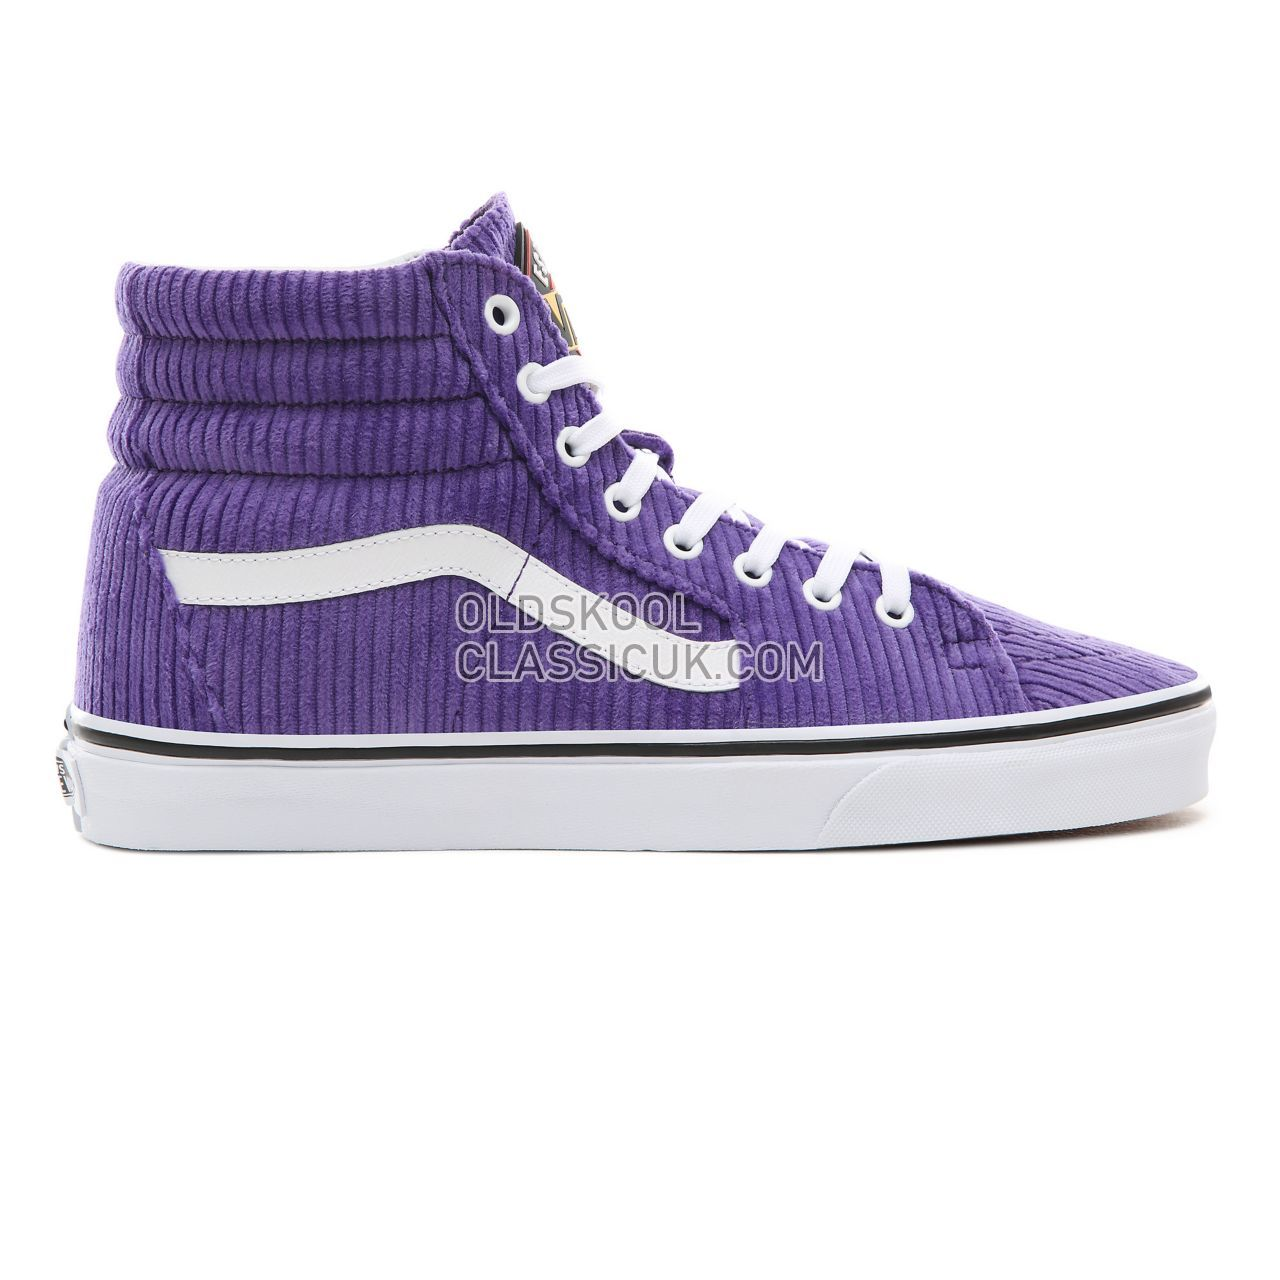 Vans Design Assembly Corduroy Sk8-Hi Sneakers Womens (Design Assembly) Heliotrope/True White VA38GEU7C Shoes